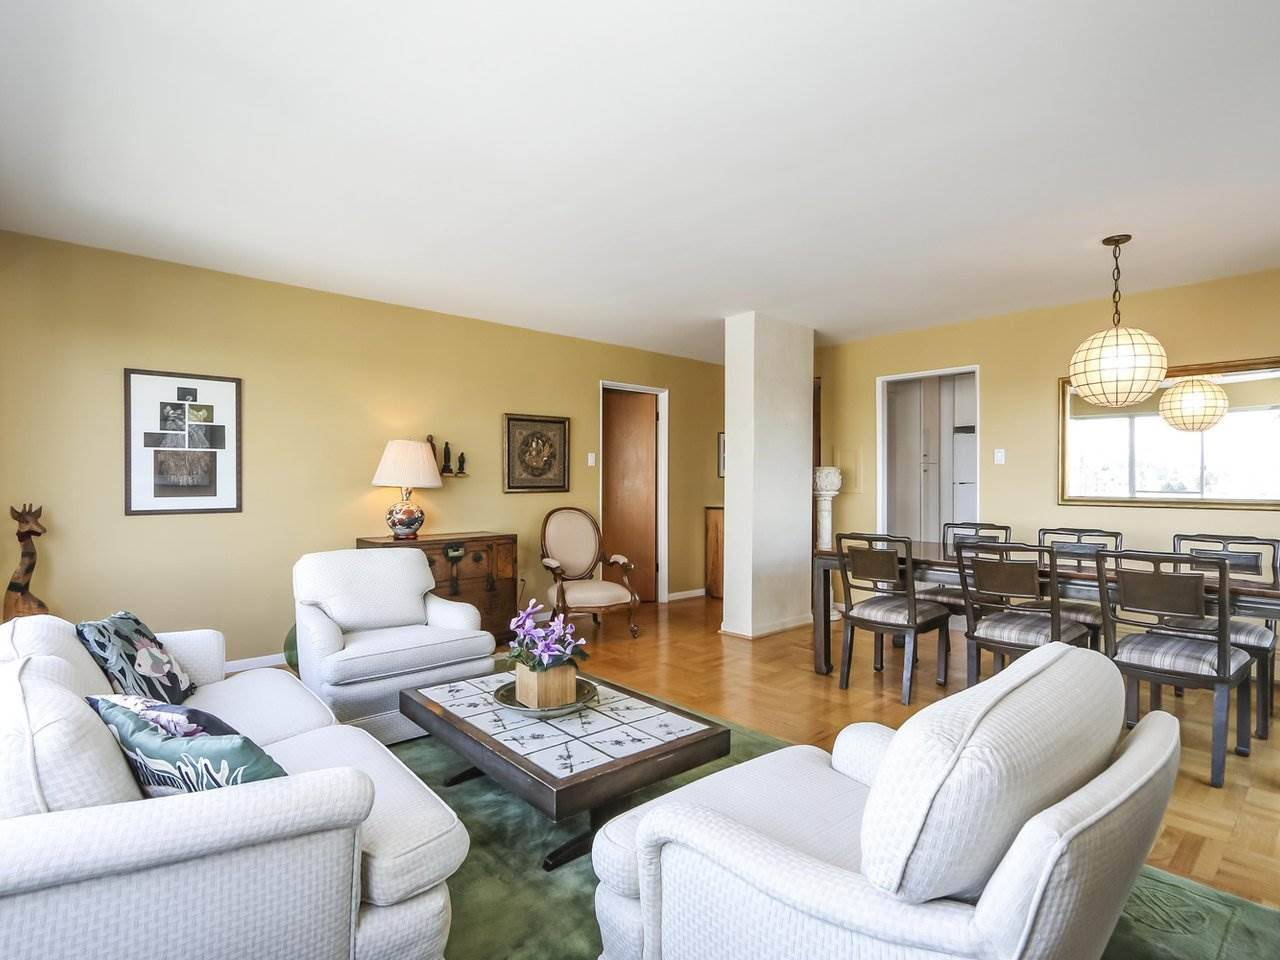 Buliding: 6076 Tisdall Street, Vancouver, BC